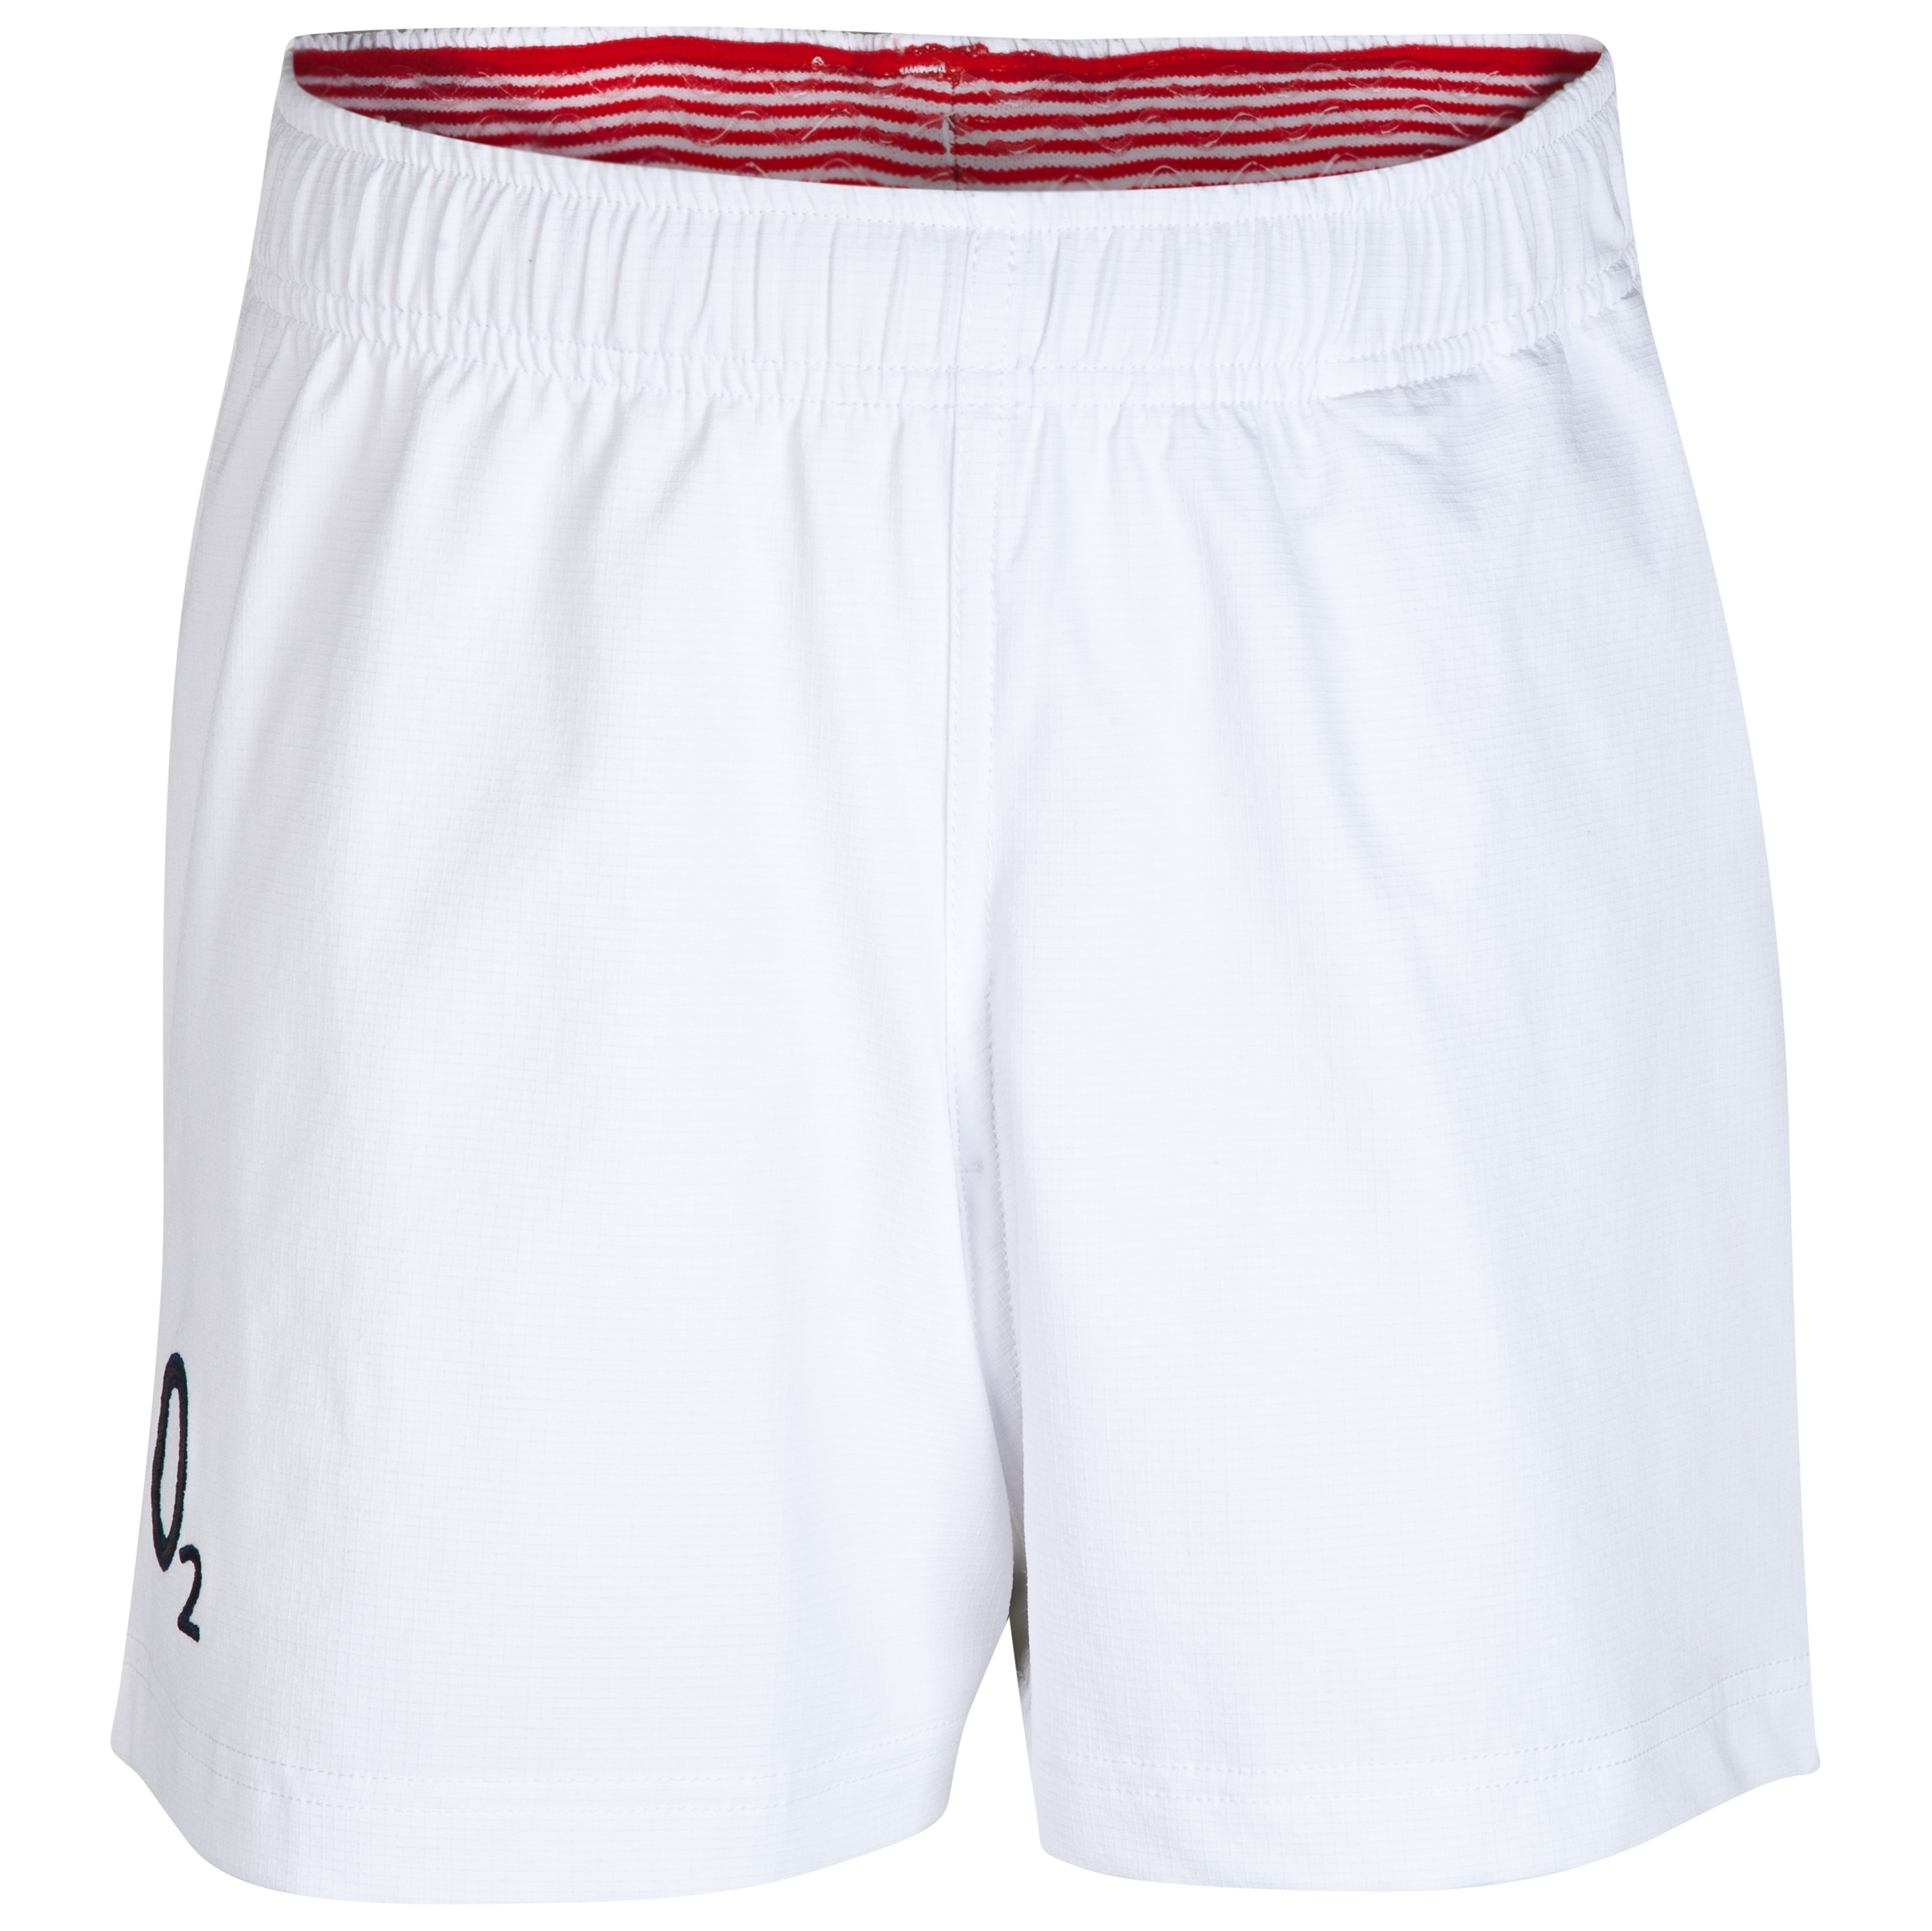 England Home Rugby Short 2013/14